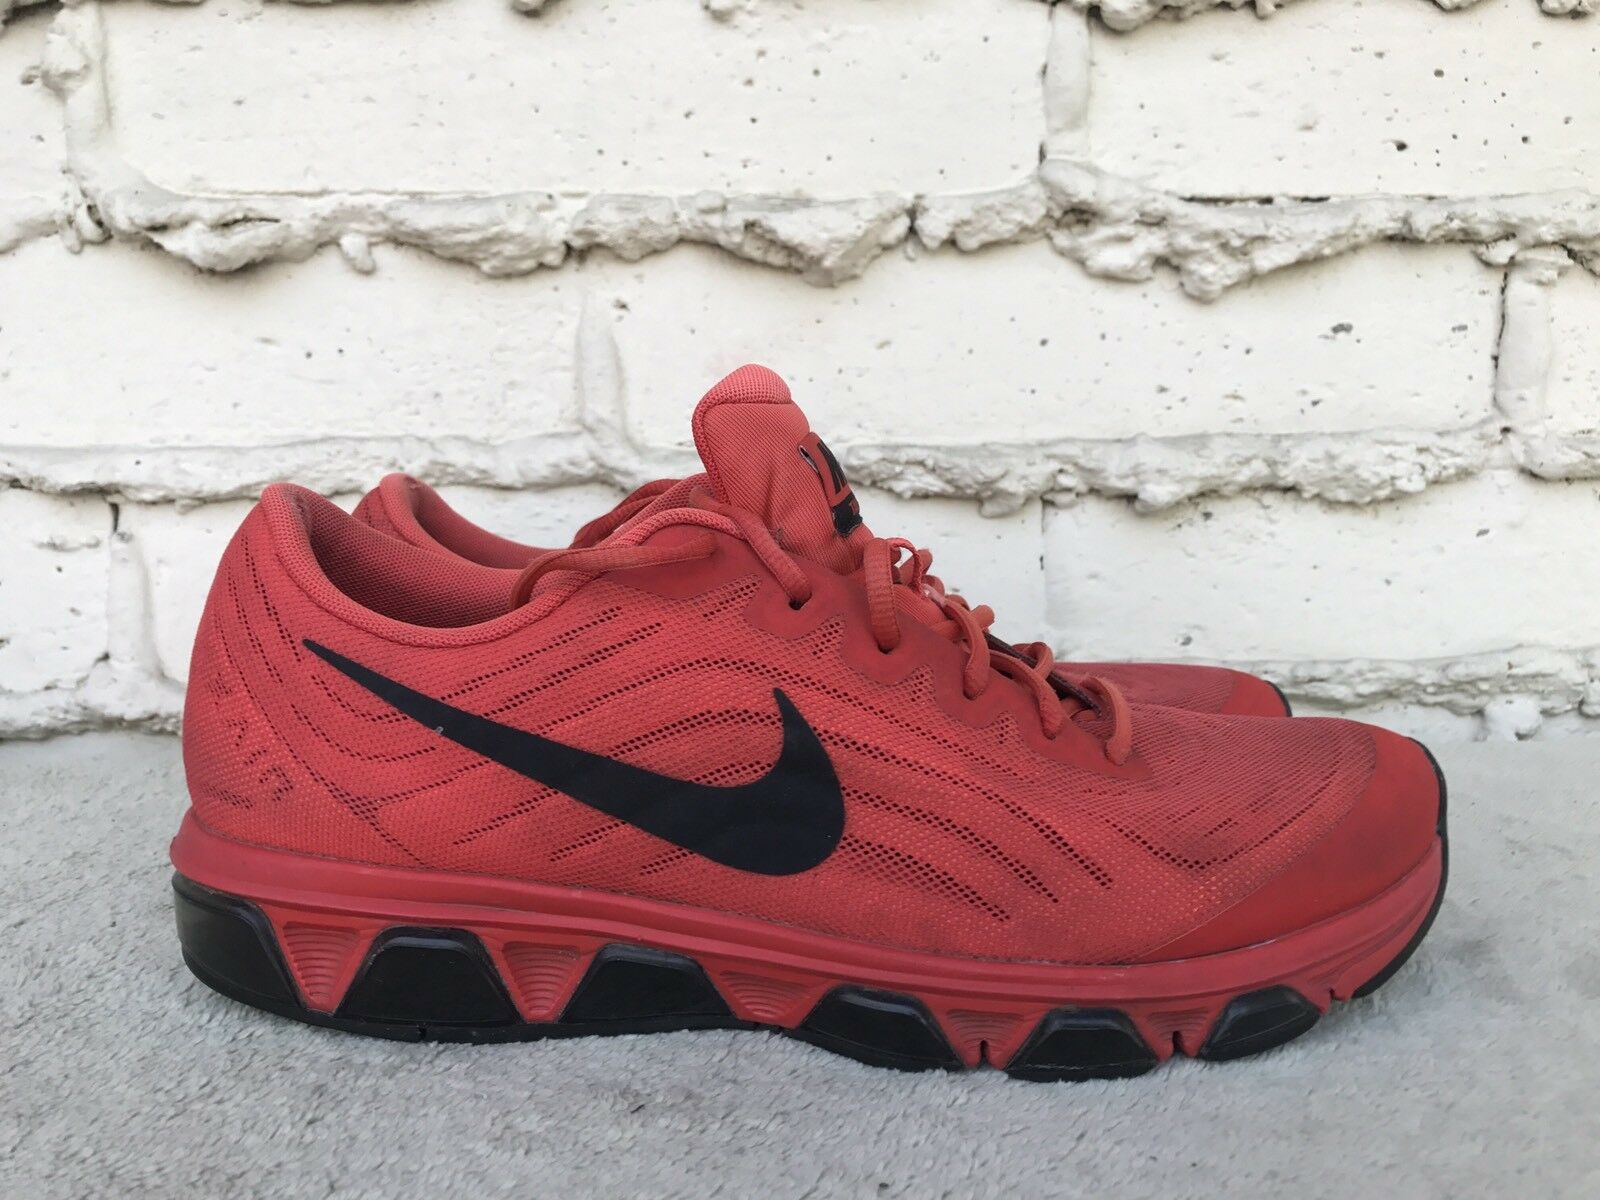 Nike Air Max Tailwind 6 Men's Running Training Shoes Sneaker 621225-606 US 11.5 Great discount